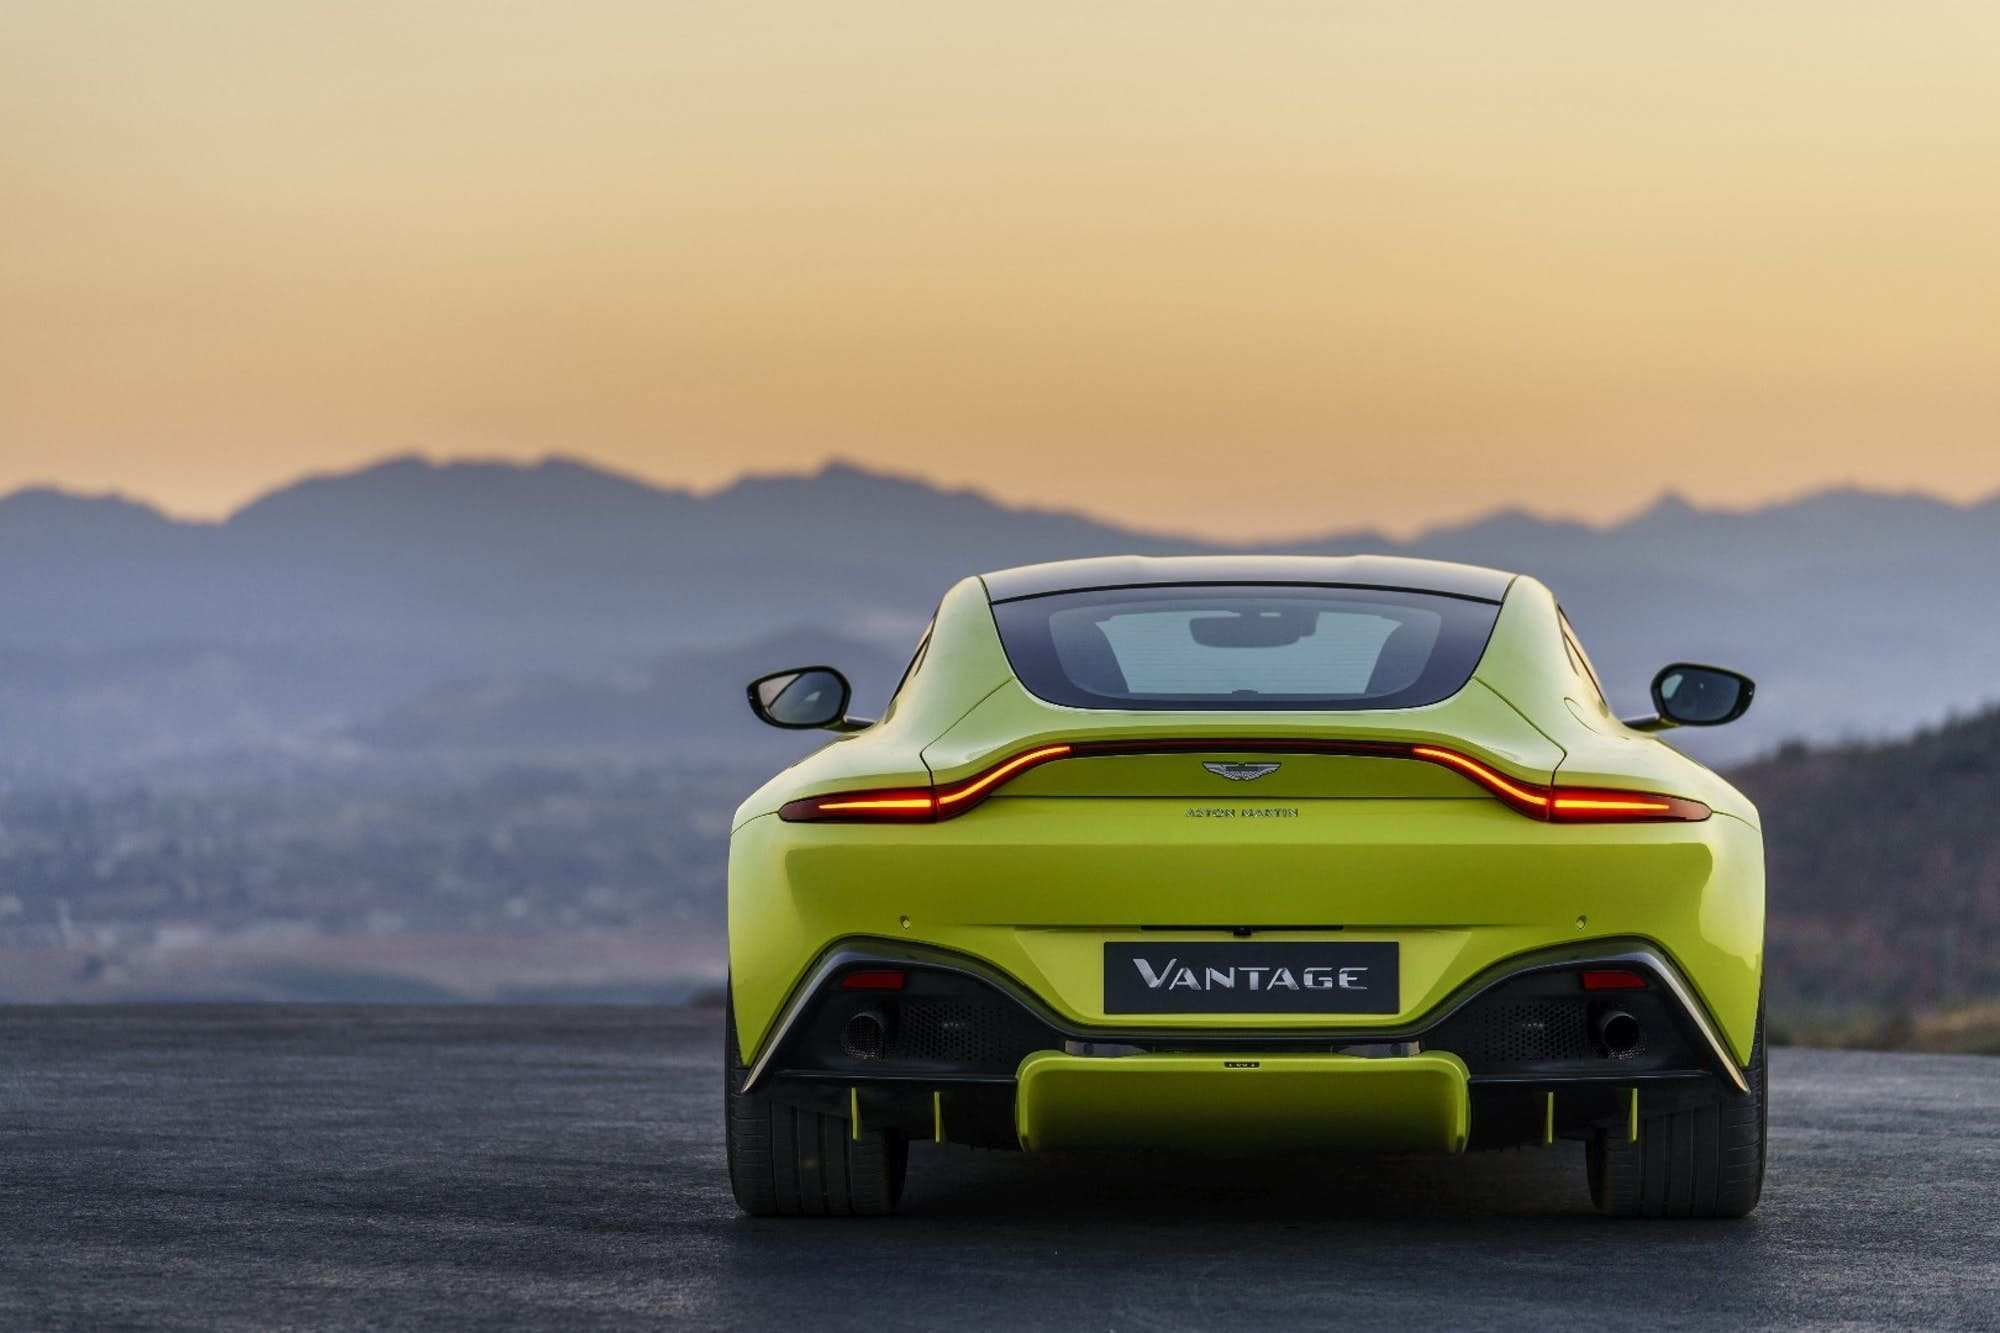 2018 Aston Martin Vantage Rear View With Unbroken Light Bar And Diffusers On Display Astonmartin Aston Martin Vantage Aston Martin New Aston Martin